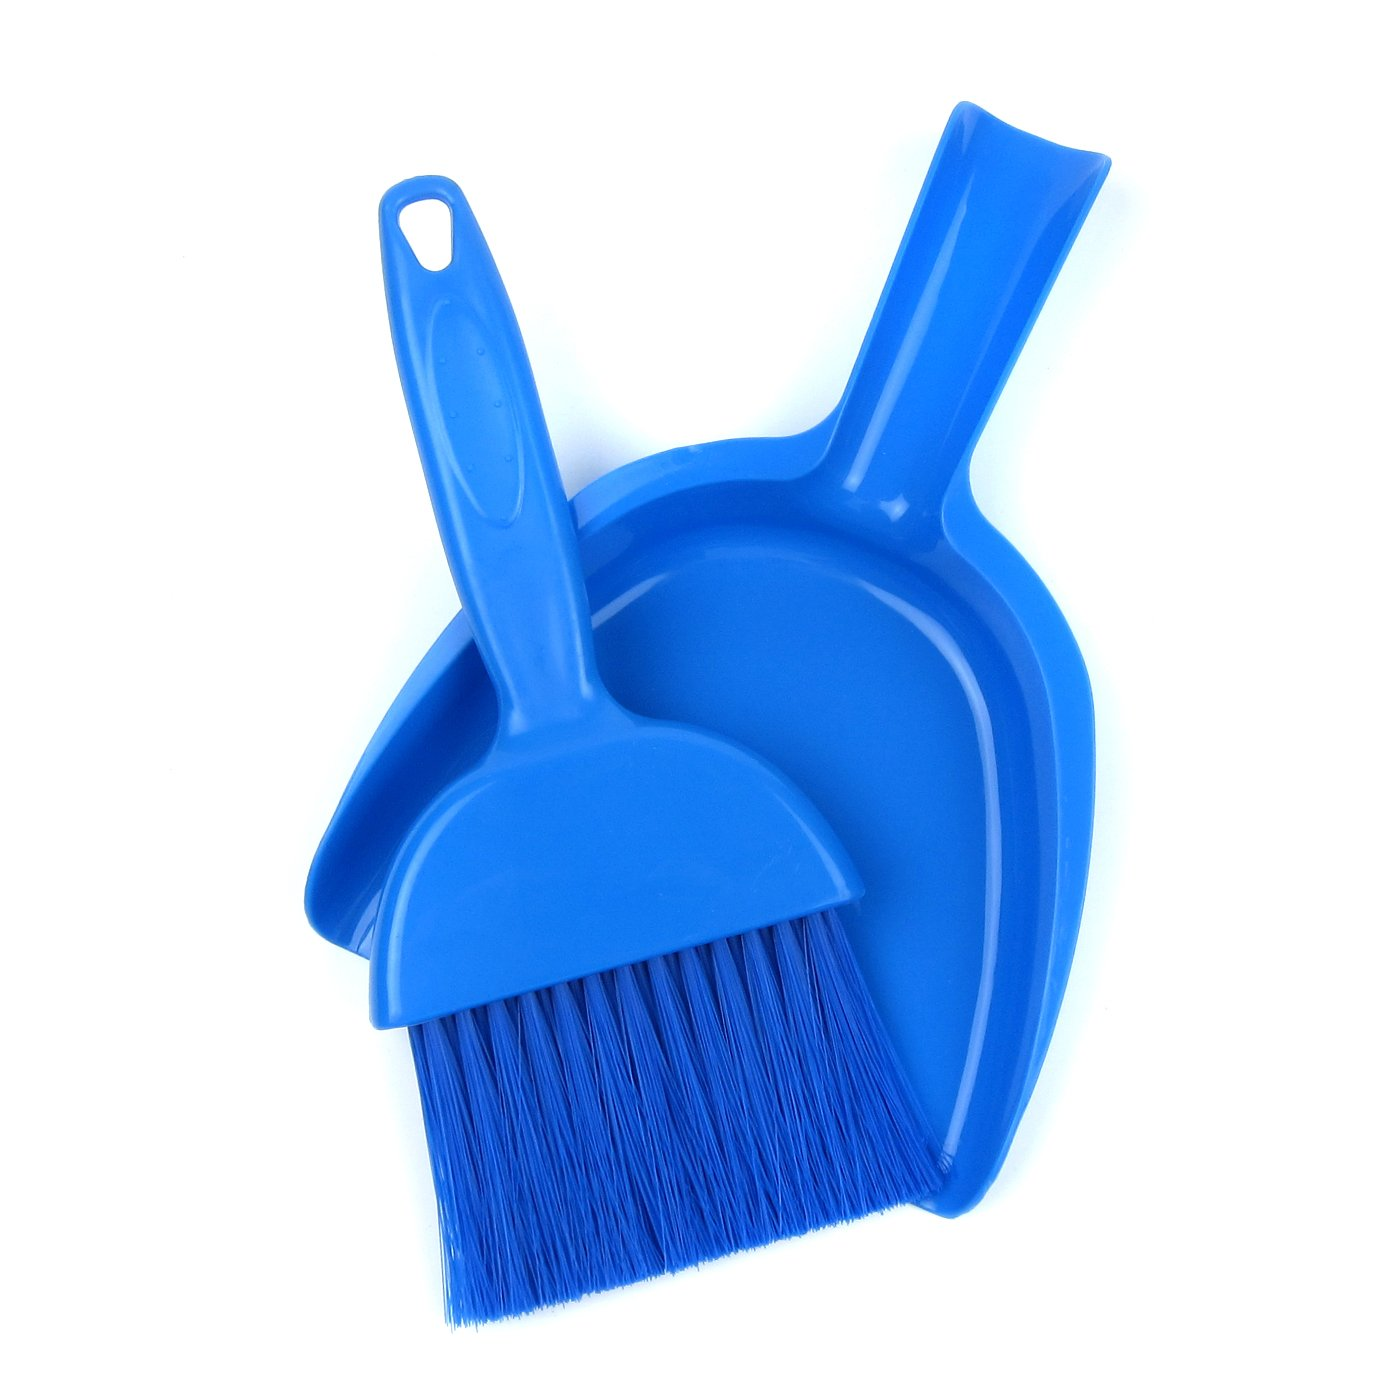 Alfie Pet by Petoga Couture - Aaron Cat or Small Animal Cleaning Brush Set - Color Blue by Alfie (Image #5)